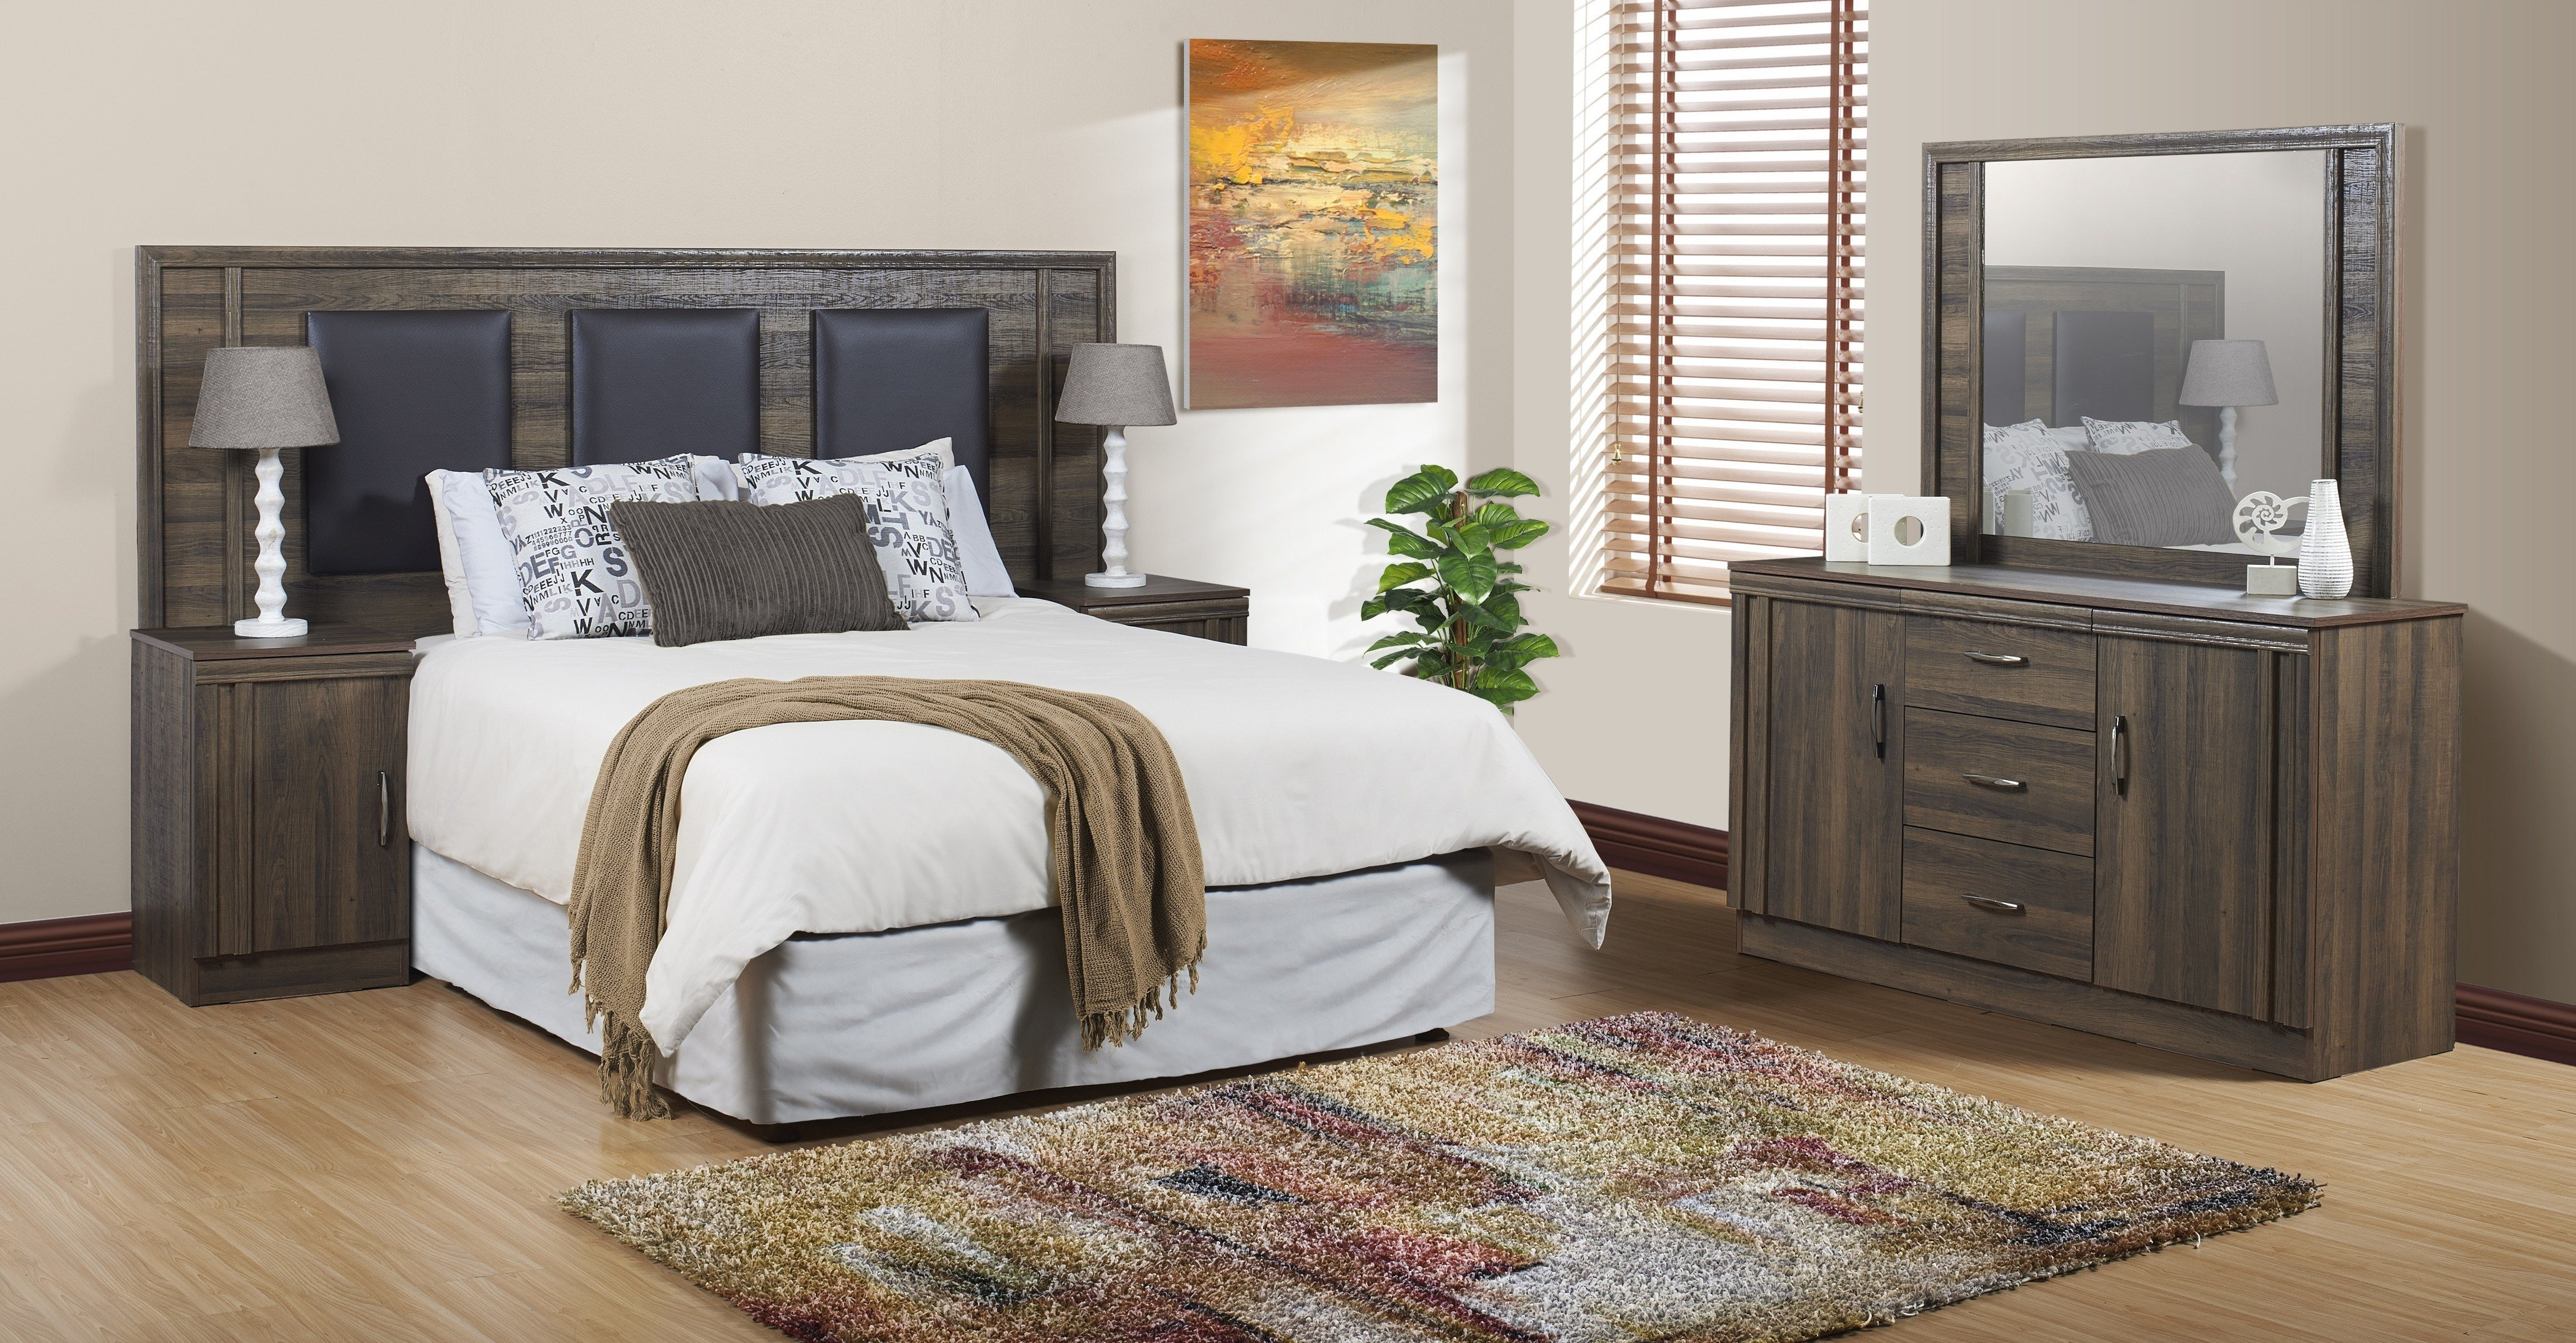 Best Classic And Modern Bedroom Suites Available Online On Our Ok Furniture Online Shop South Africa With Pictures